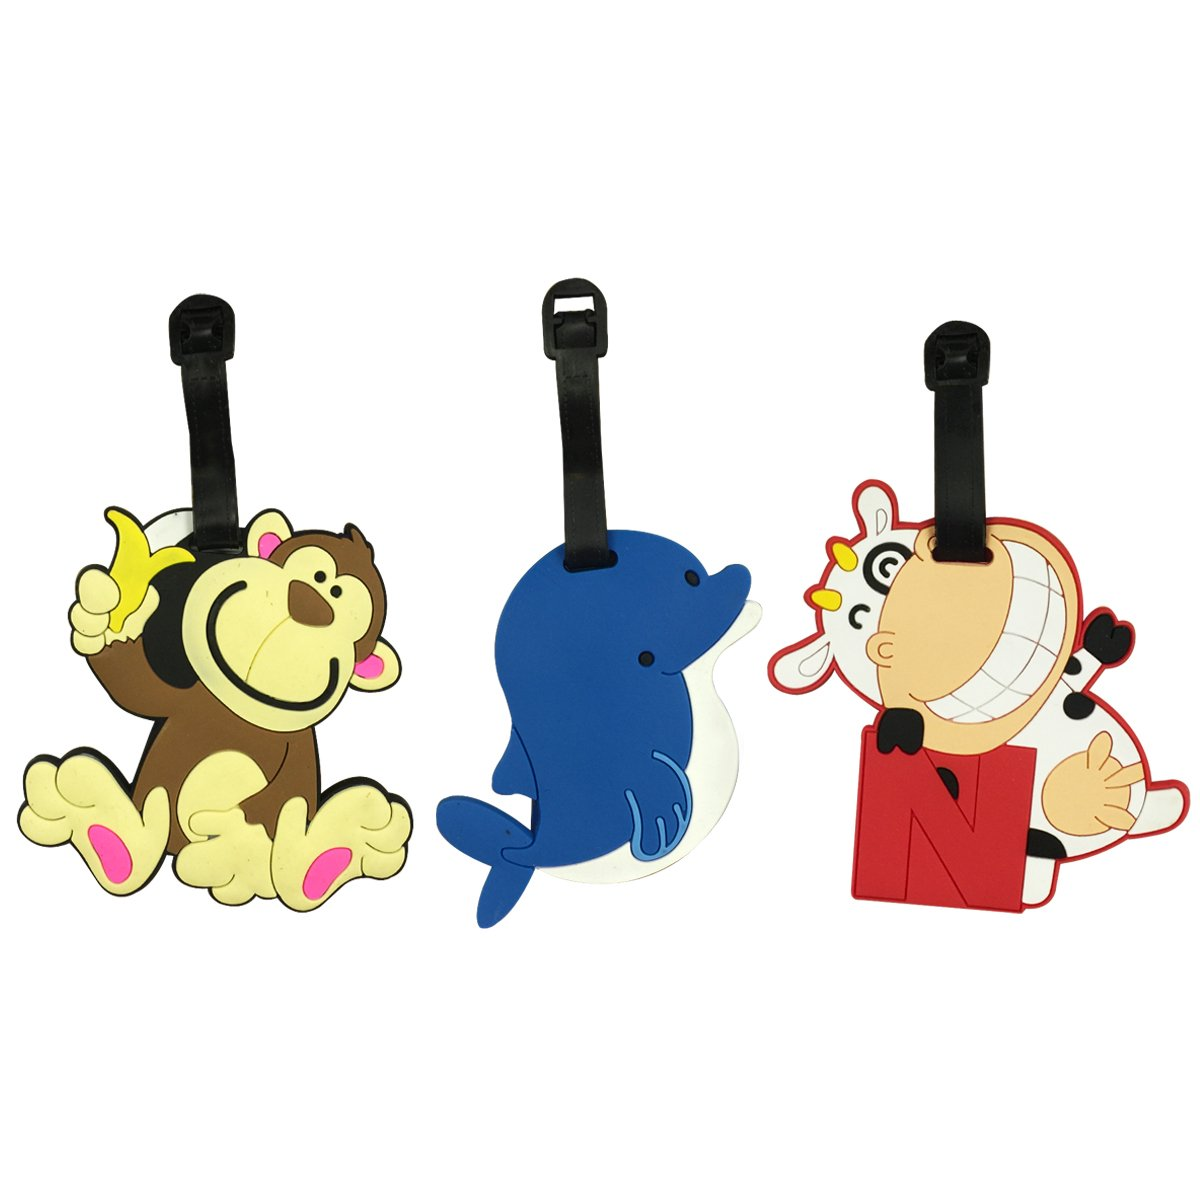 Wrapables Silicone Animal Luggage Tag with ID Card (Set of 3), Cow/Dolphin/ Monkey B01H819T4Q